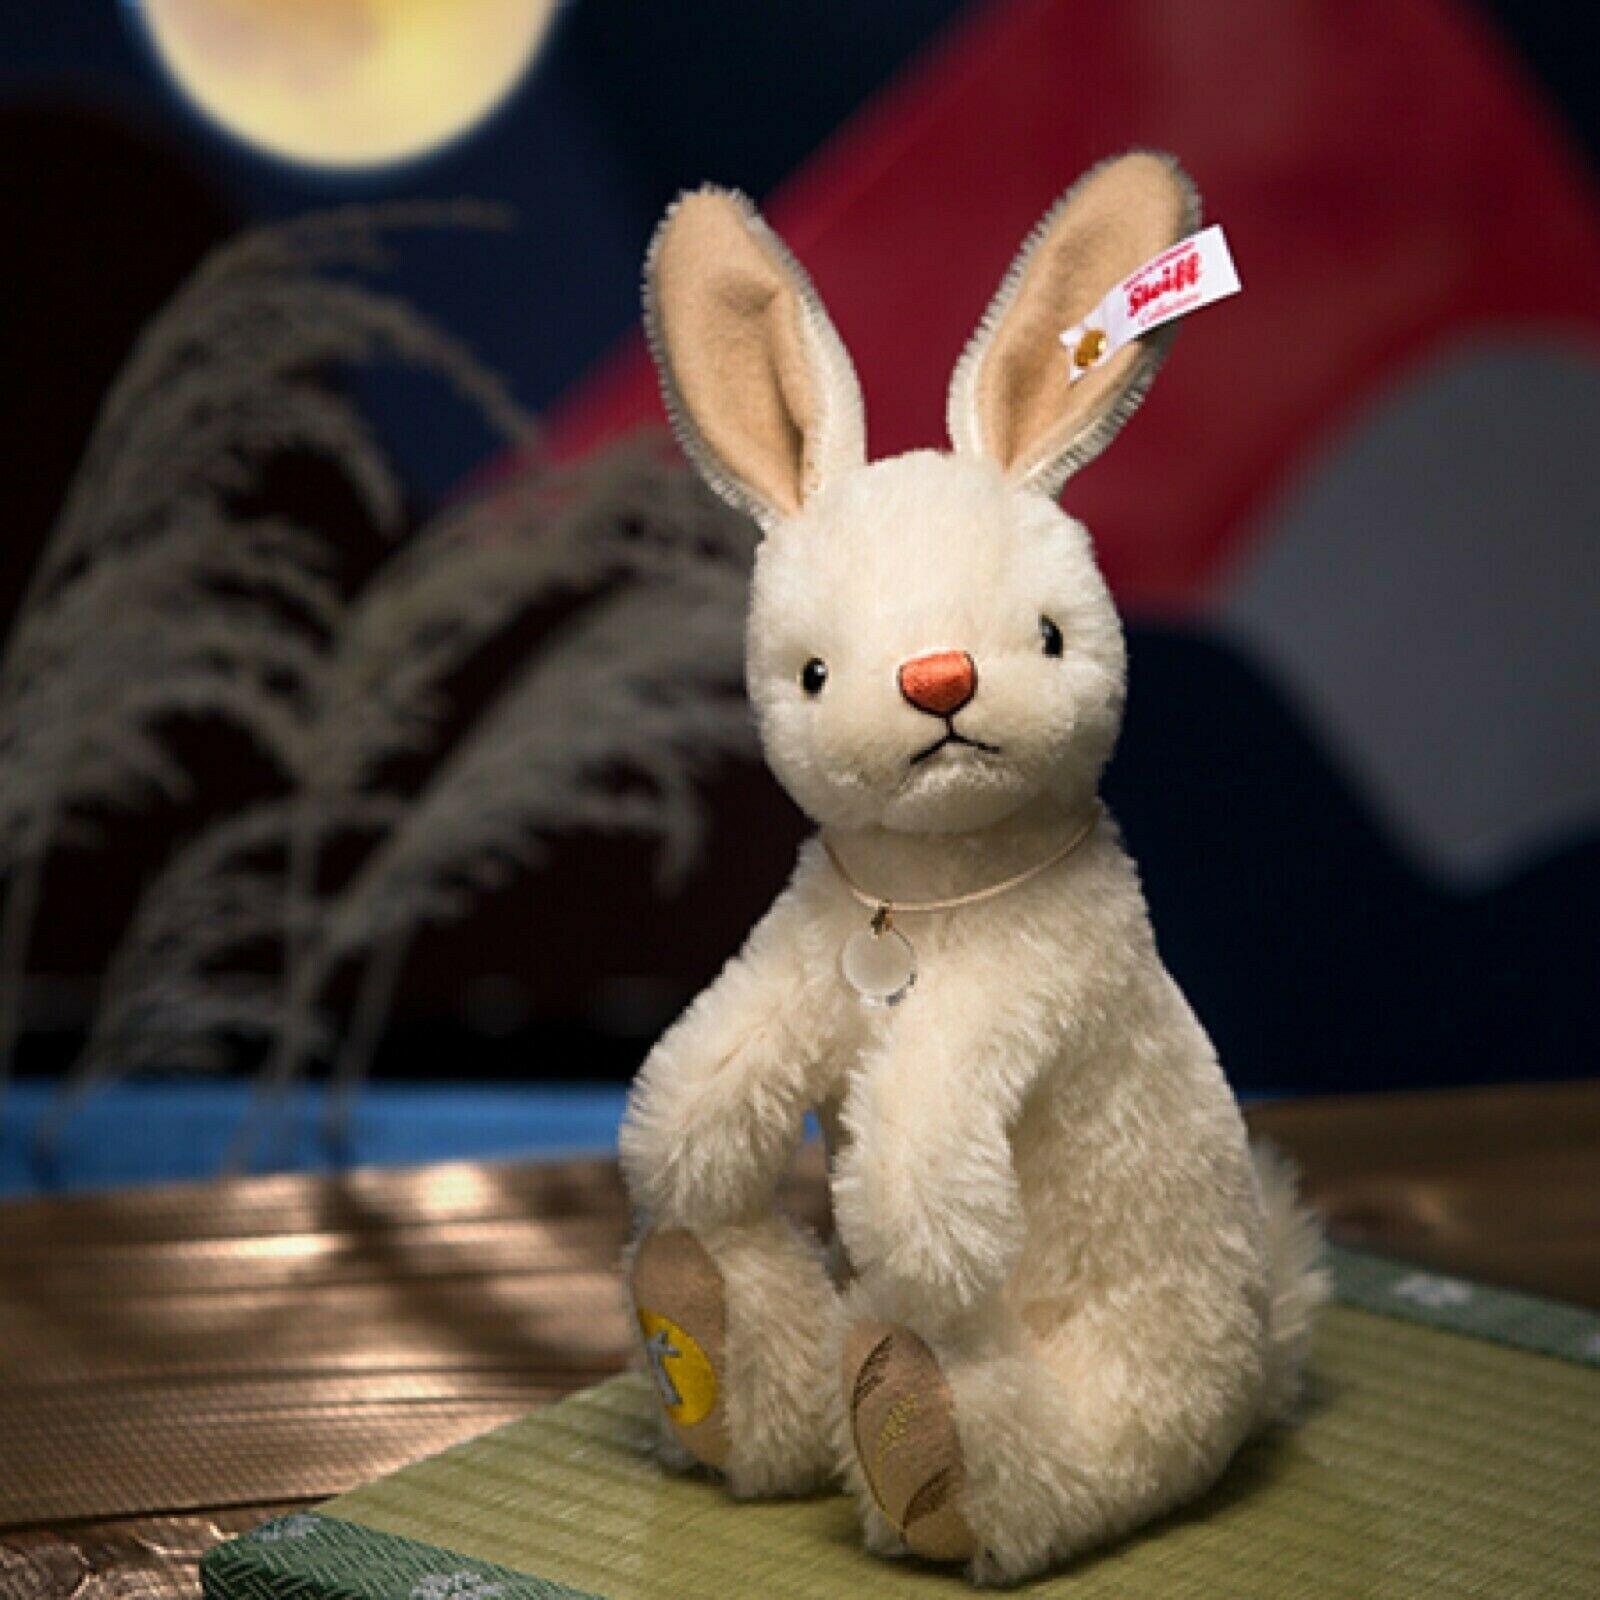 Steiff 15th Night Viewing Full Moon Weiß Rabbit Plush LE 1500 F S Japan Autumn